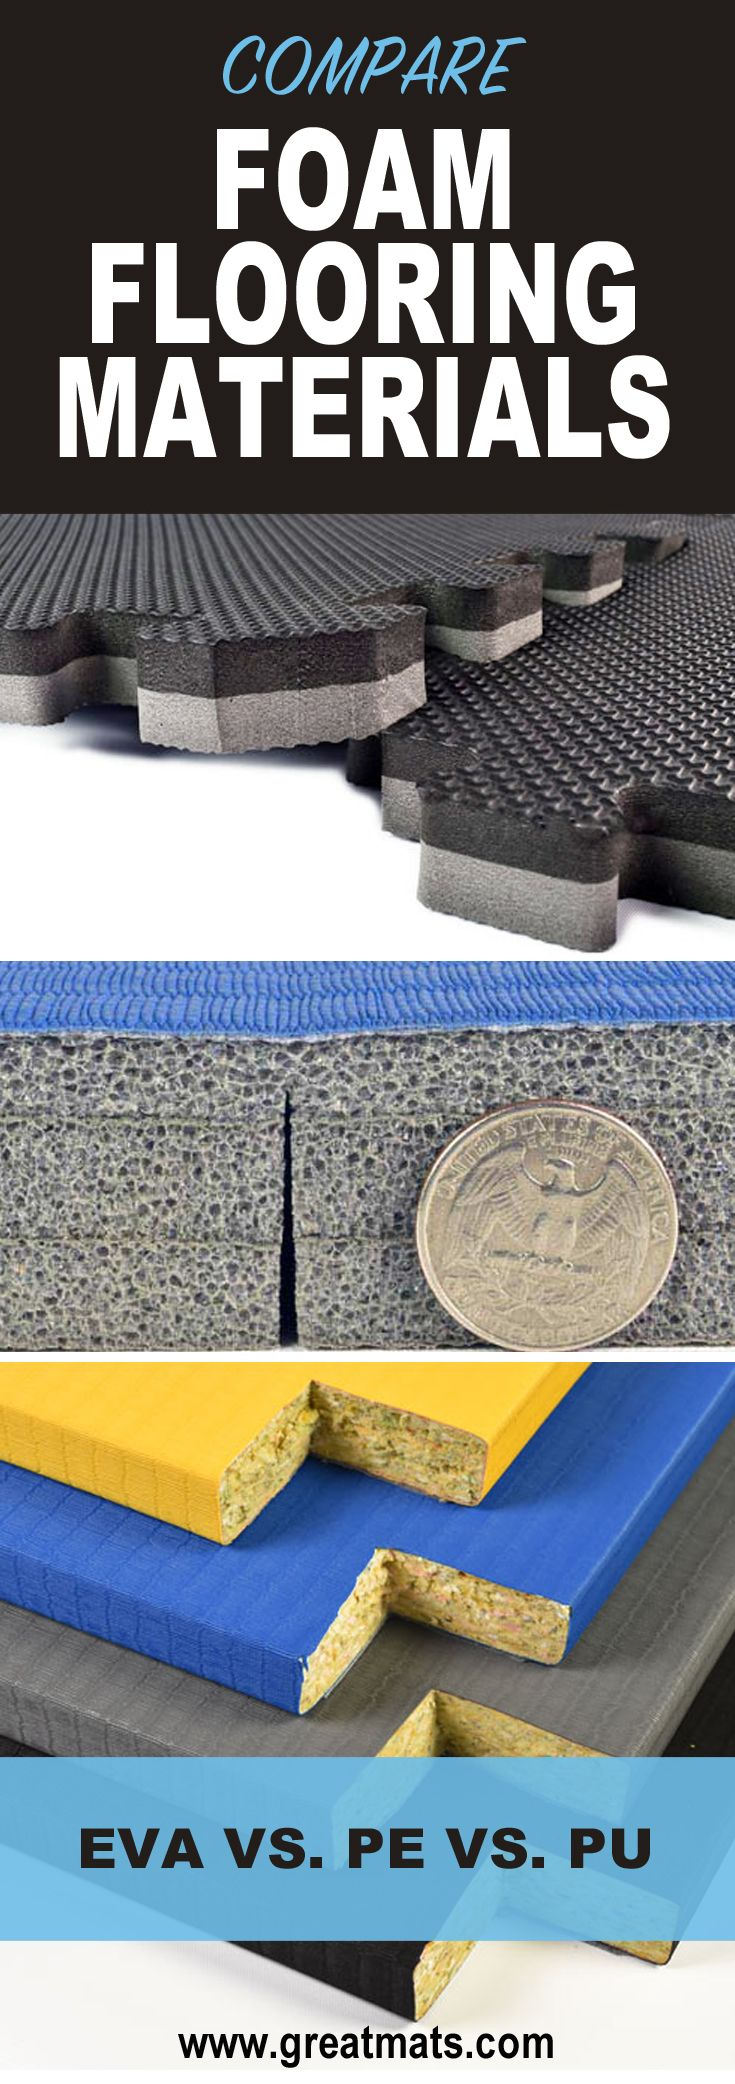 Learn the difference between flooring or mats that use EVA, Polyethylene or Polyurethane foams.